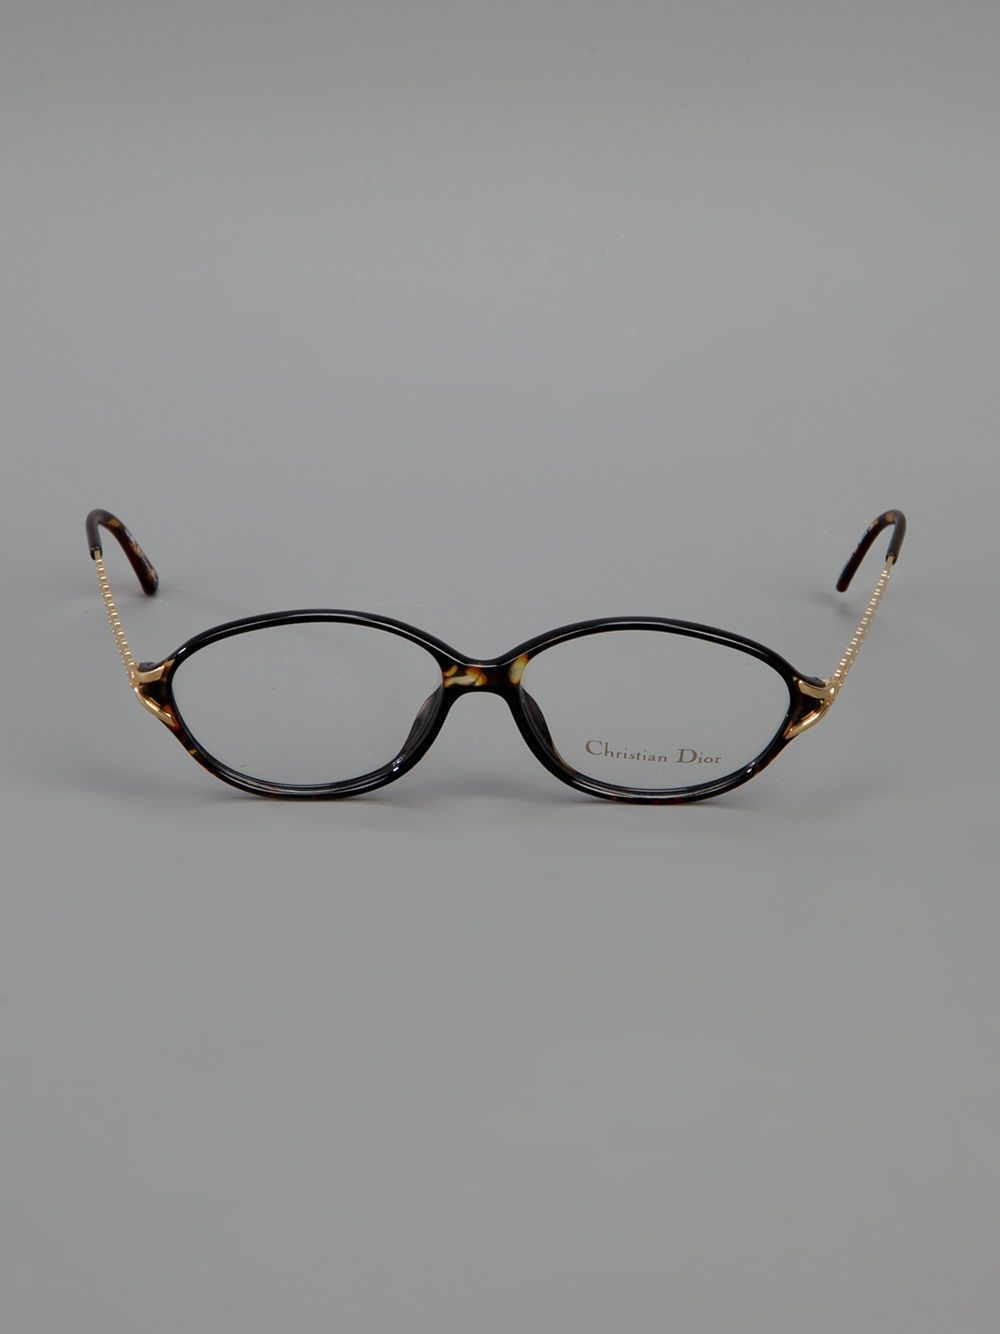 6818b529785 Black celluloid glasses from Christian Dior Vintage featuring round frames  and gold-tone metal arms